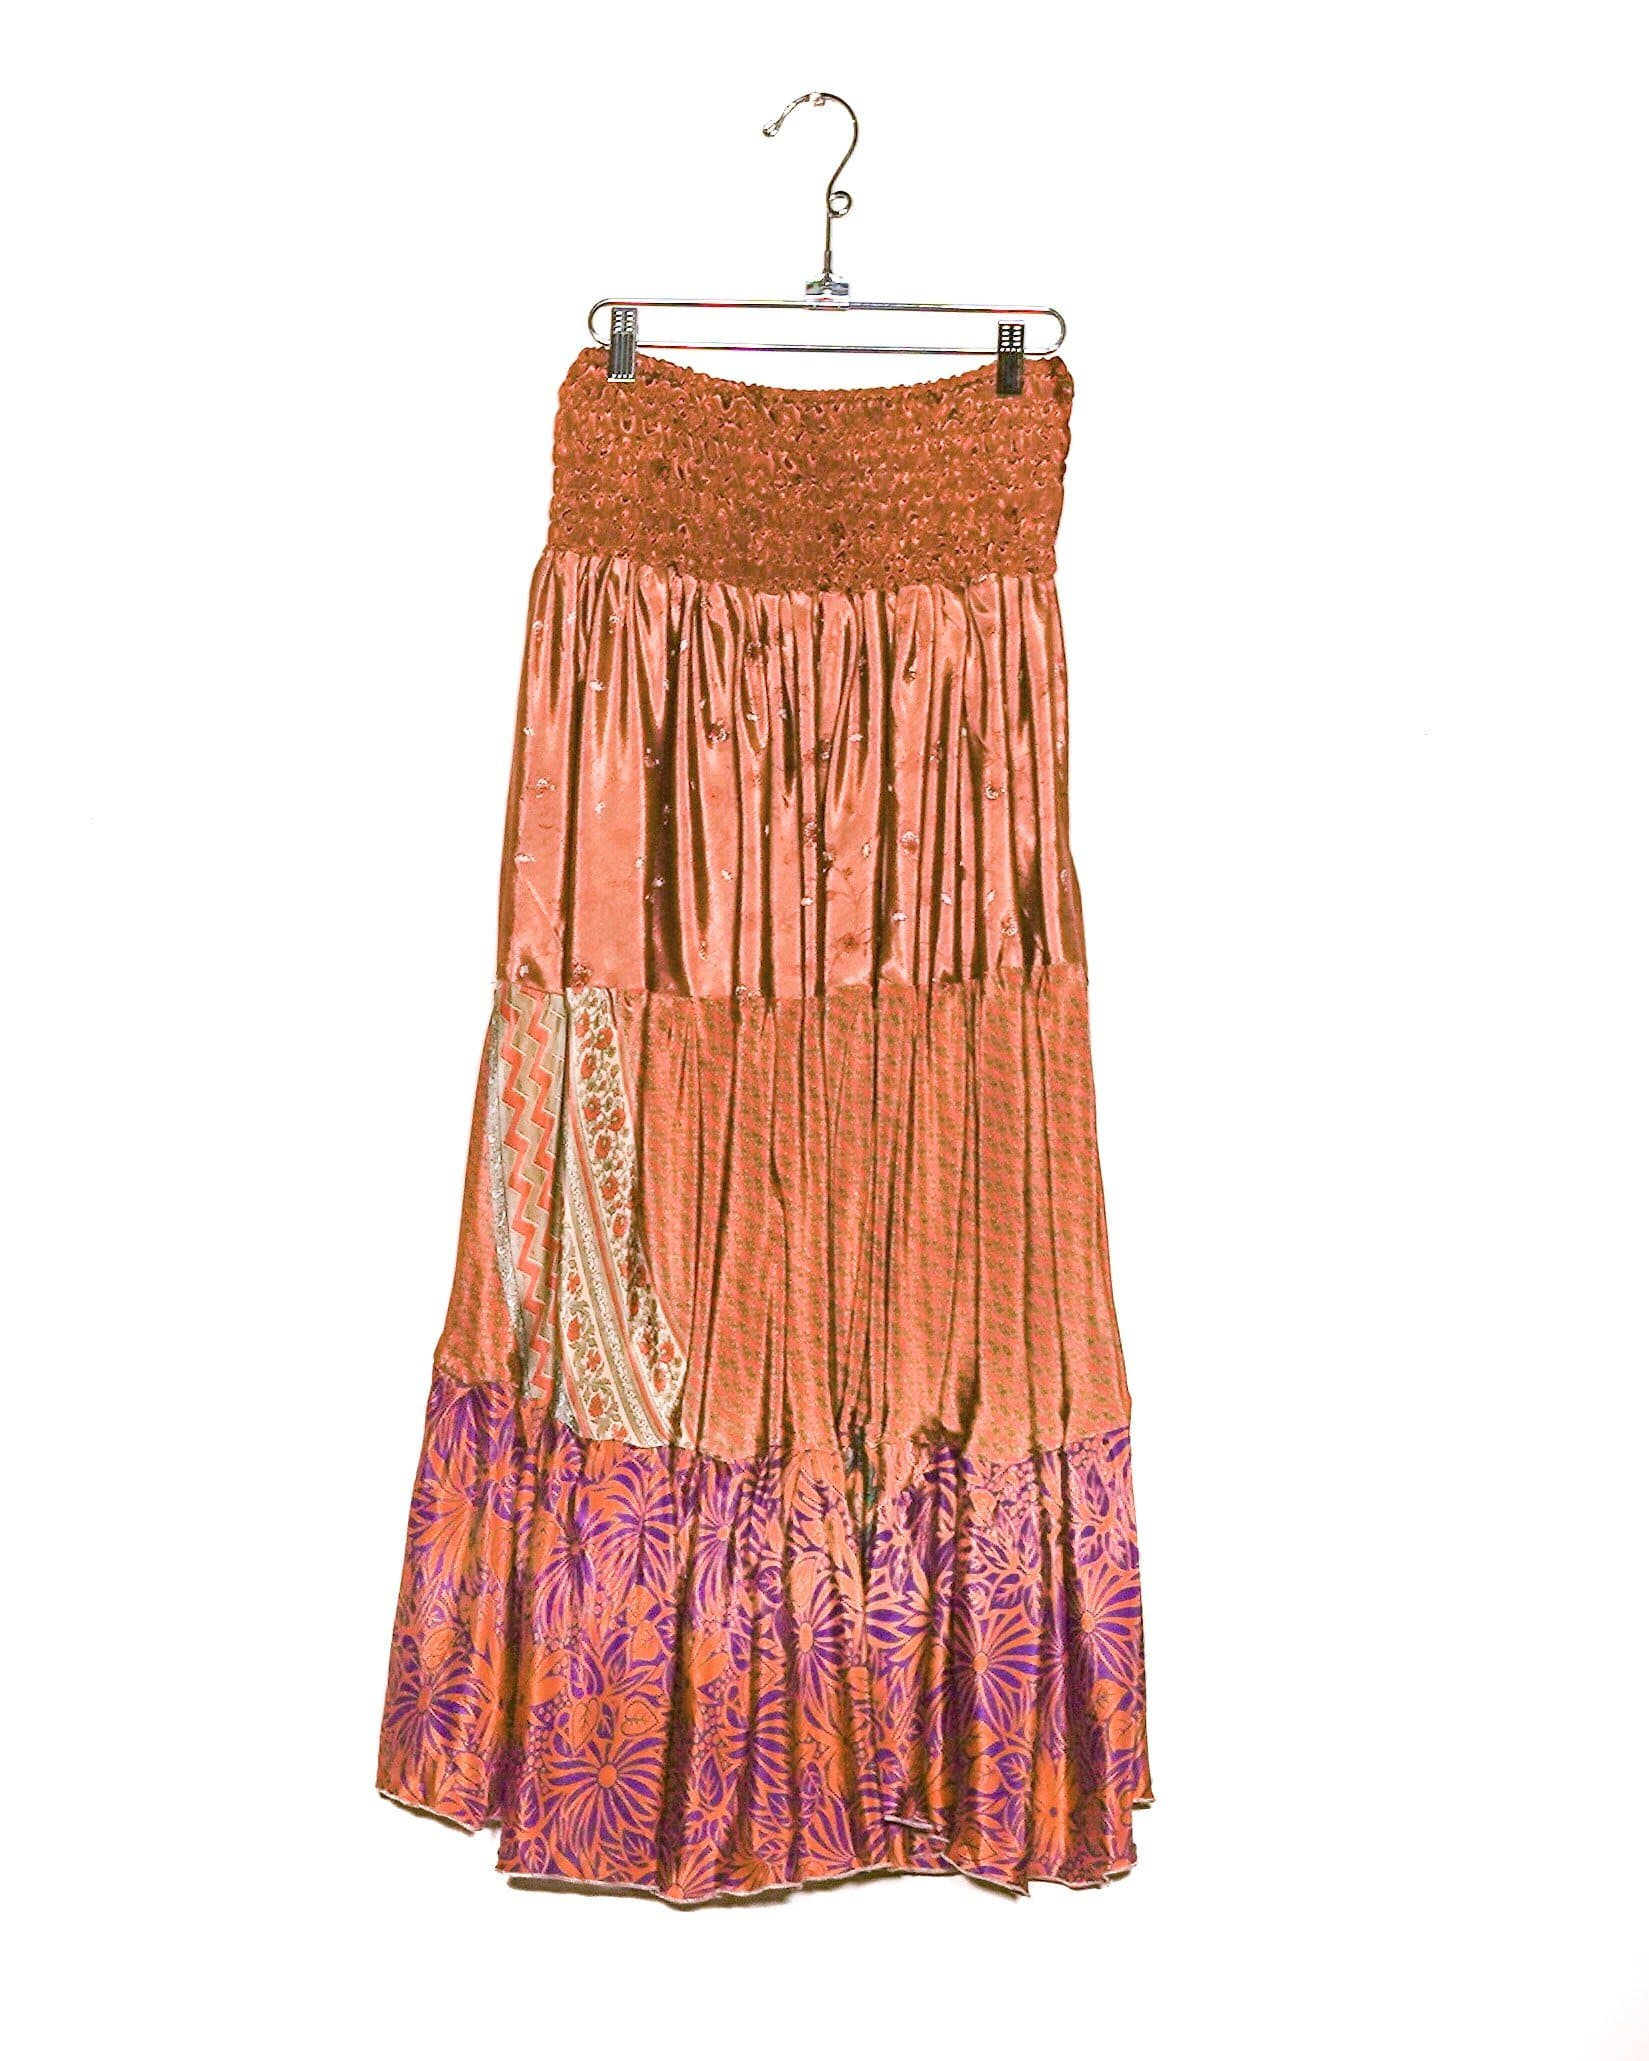 Cocoa Dreams Silk Maxi Skirt